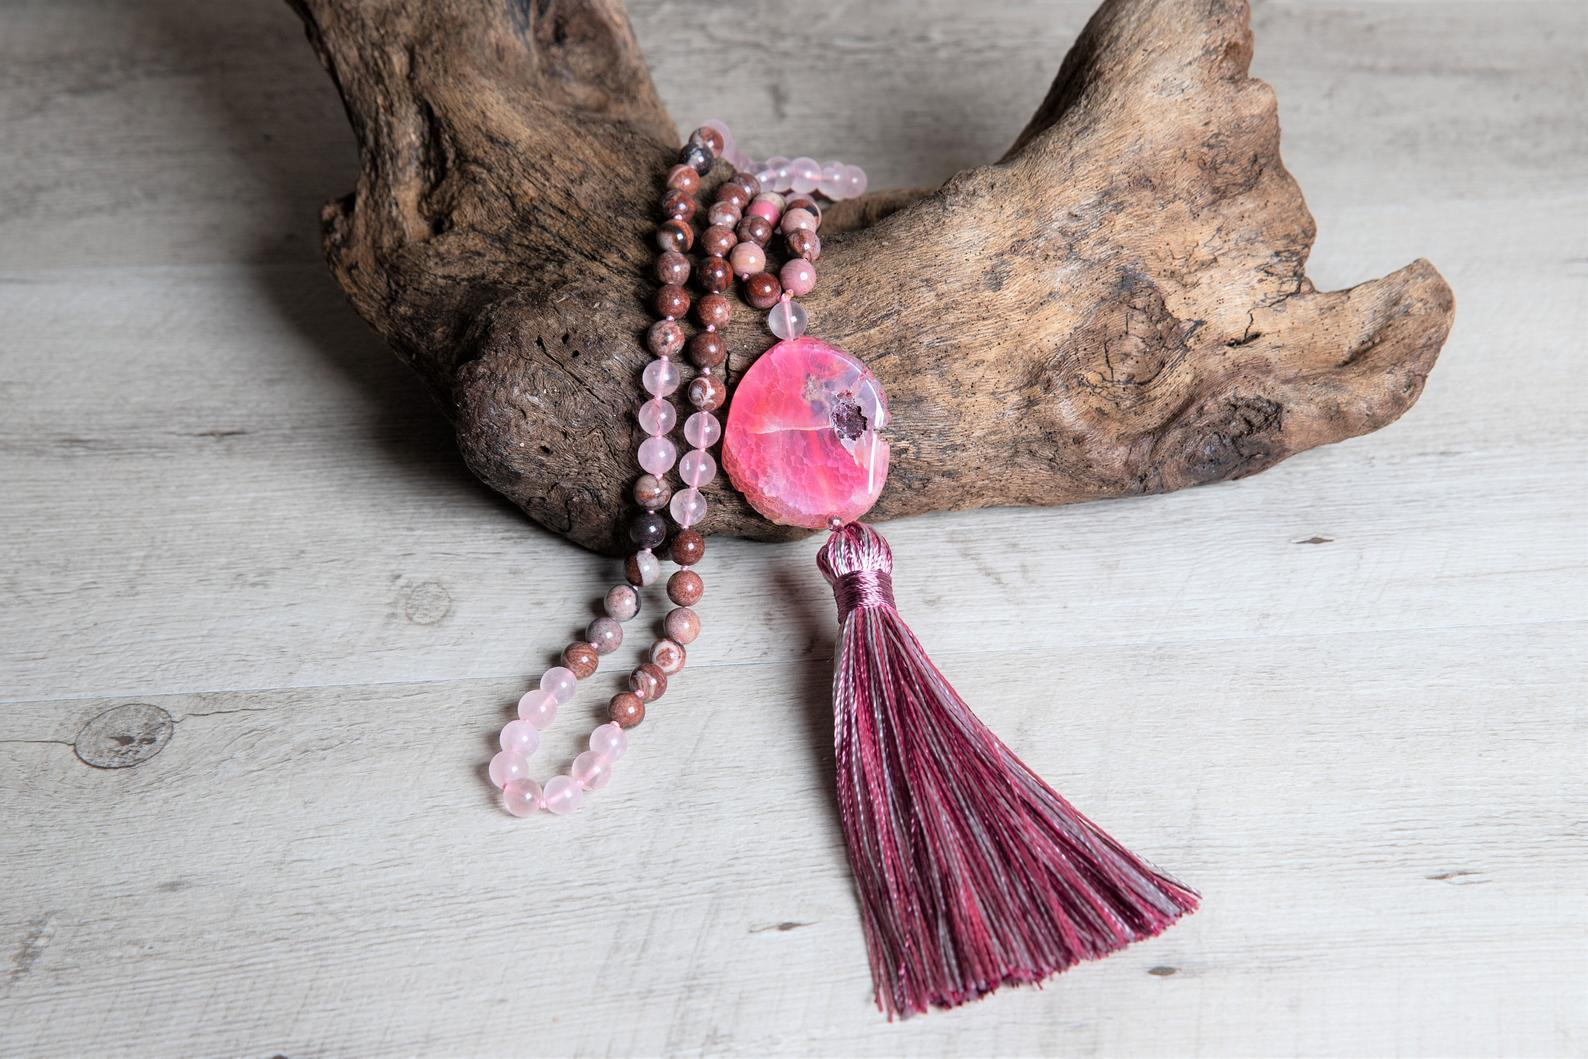 Rose Quartz Mala with Red Jasper and Rhodochrosite - Pink Geode Agate Guru Bead - Handmade Tassel of Plant Silk - Long Boho Necklace Gift